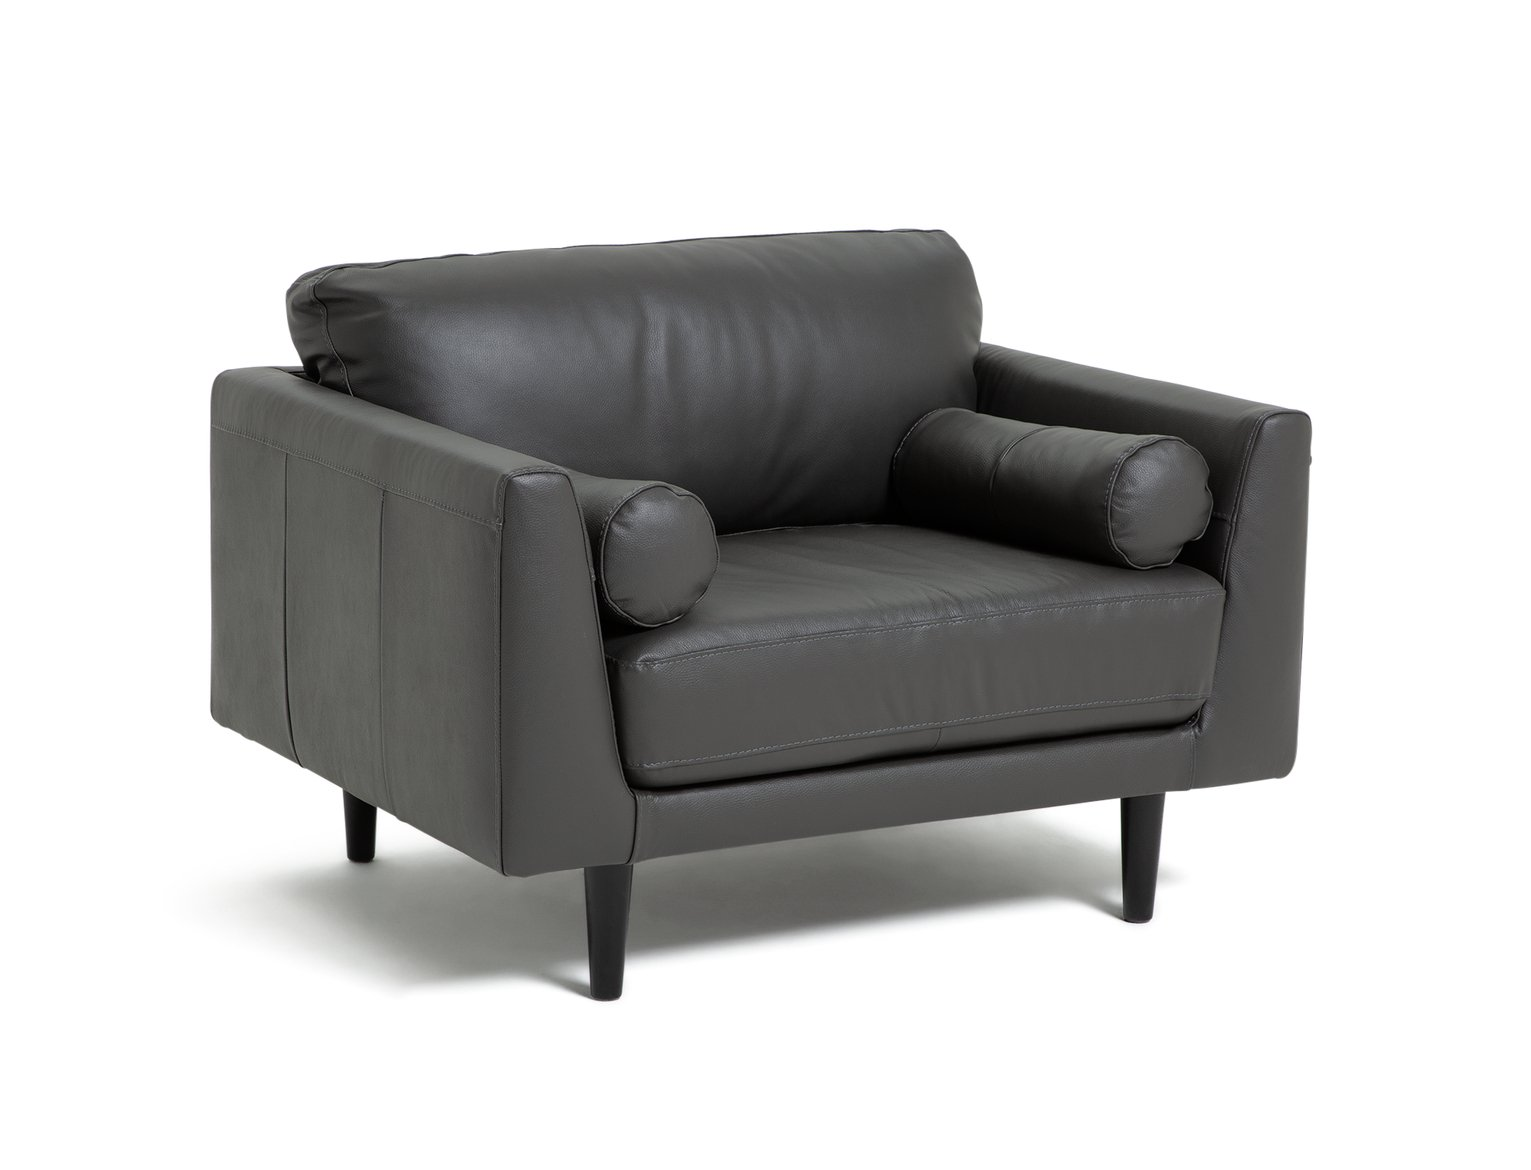 Argos Home Jackson Leather Cuddle Chair - Grey